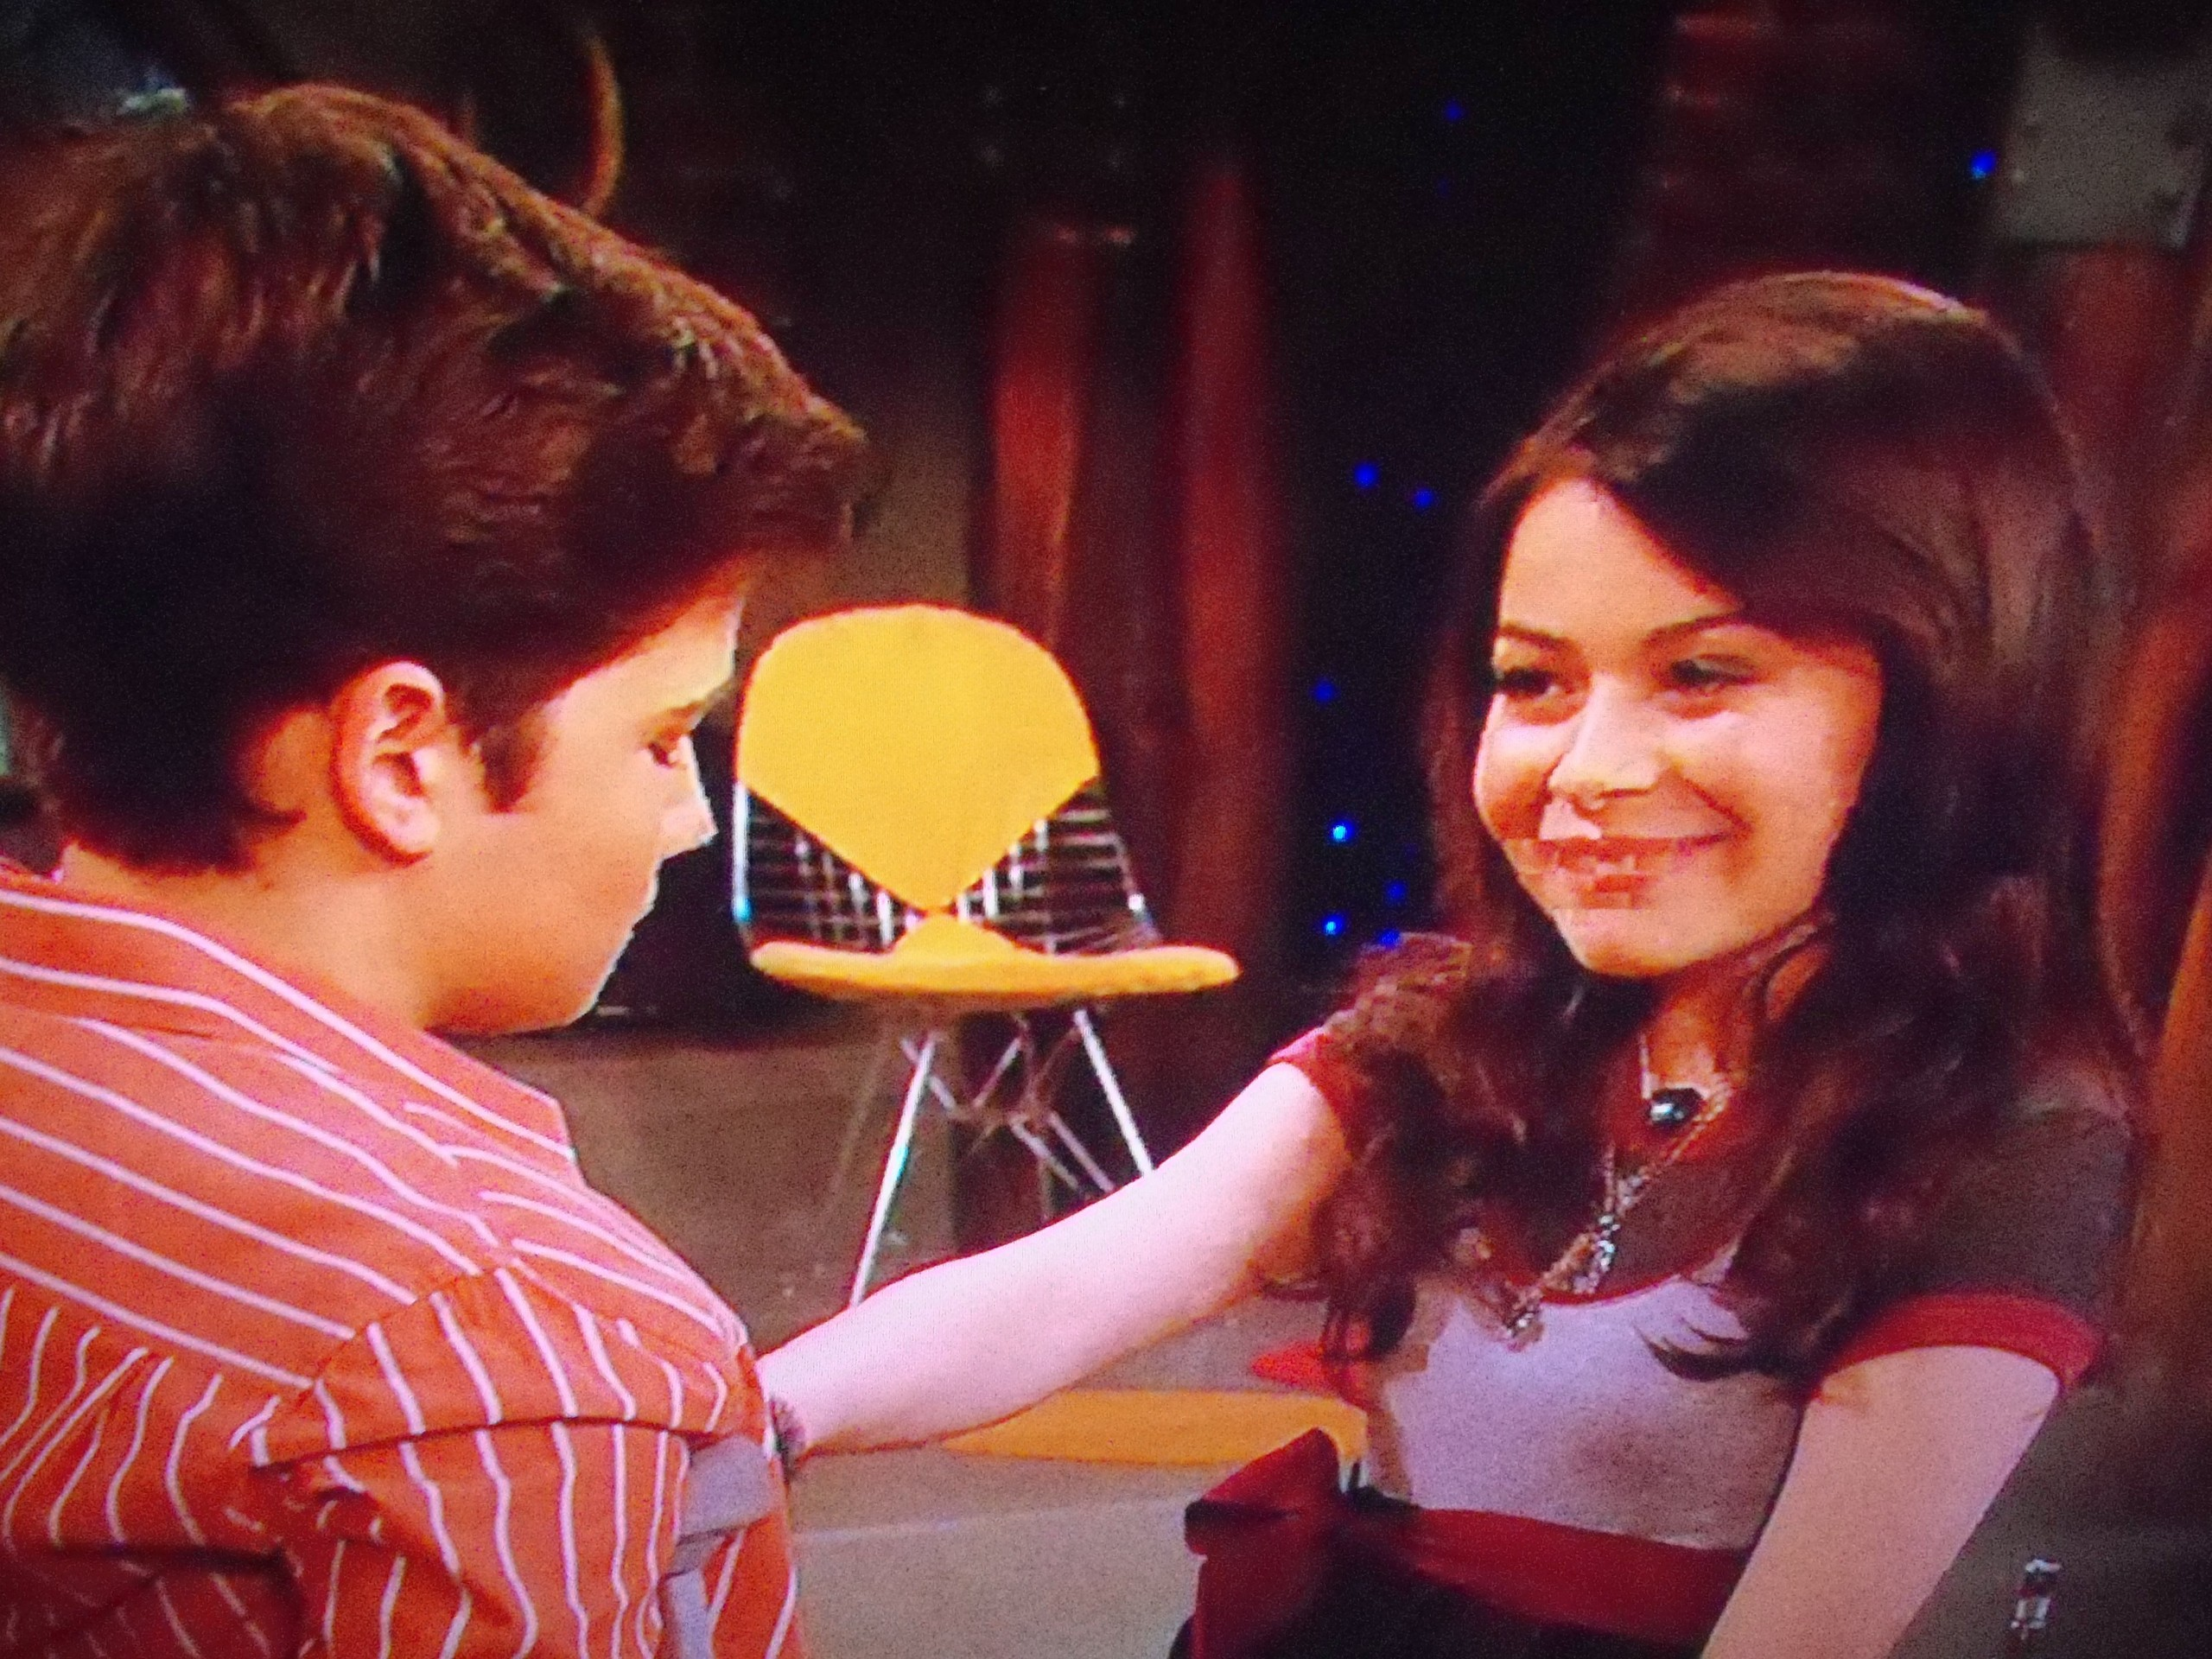 icarly carly and freddie dating After the events of ilost my mind, sam and freddie begin a rocky relationship, but problems circulate around carly when she has to resolve their every fight (even one at 3 am.